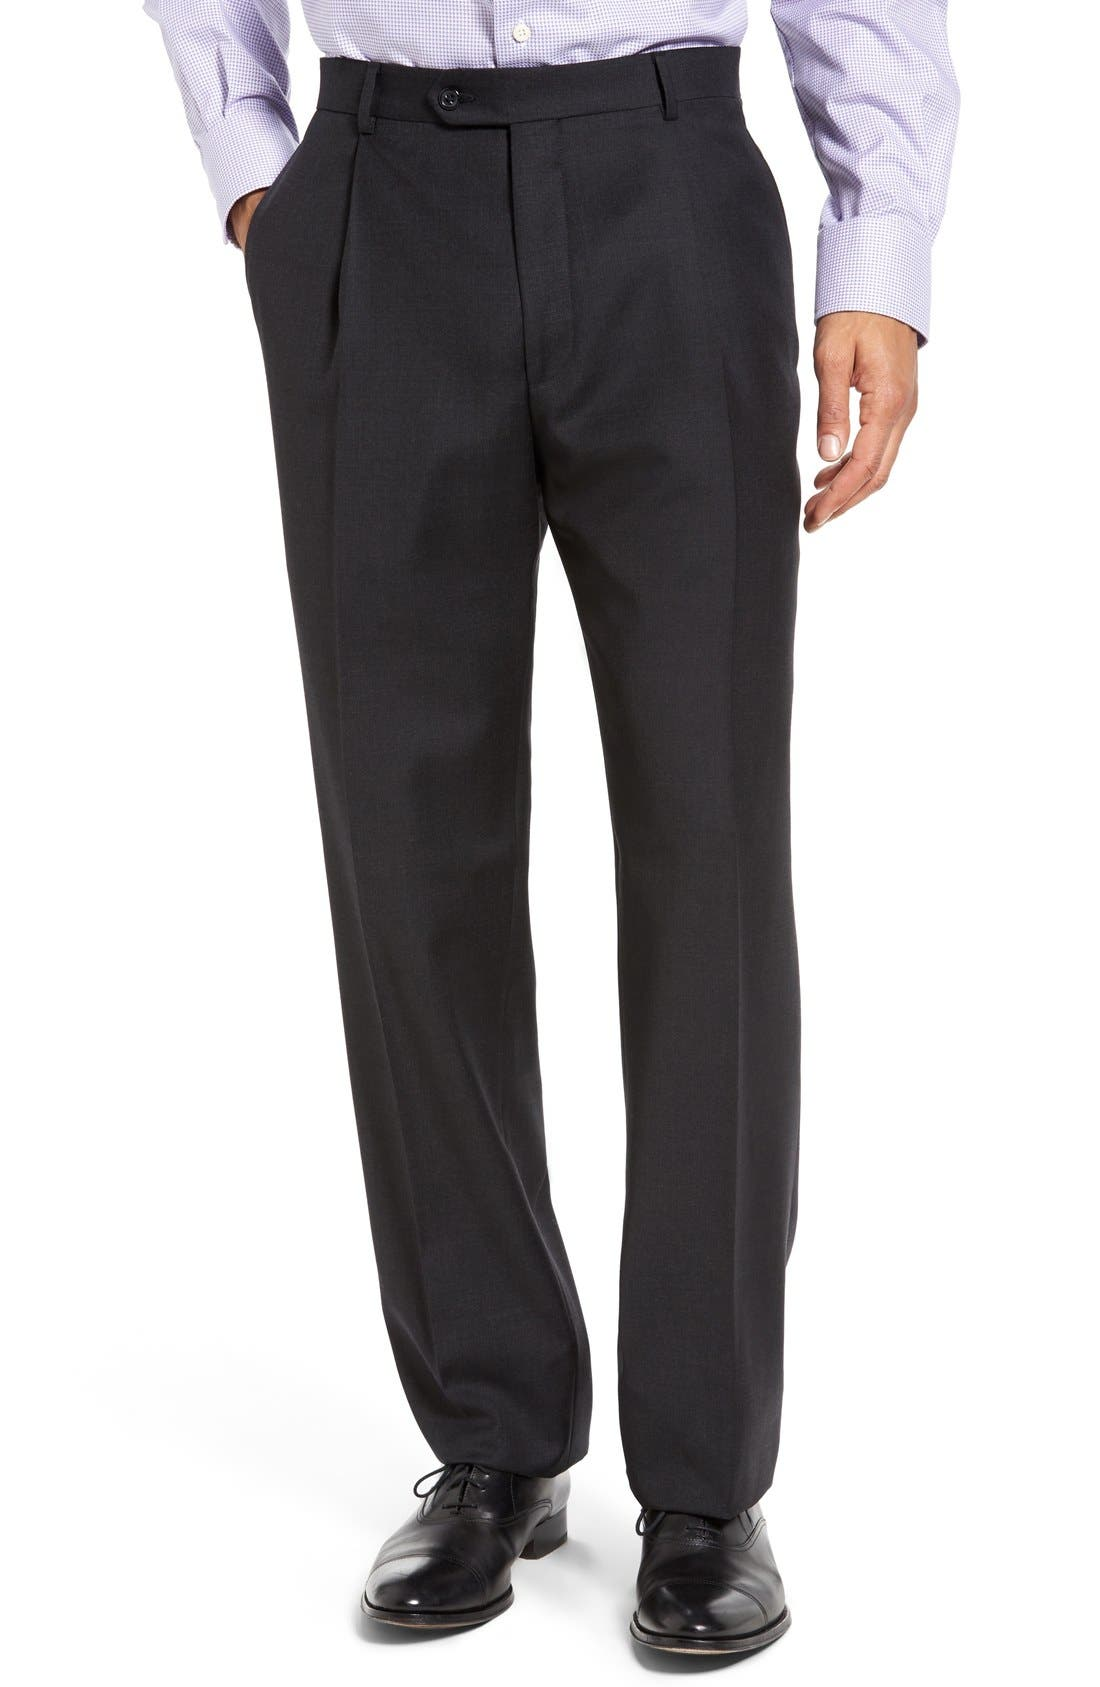 Chicago Classic Fit Solid Wool Suit,                             Alternate thumbnail 8, color,                             010